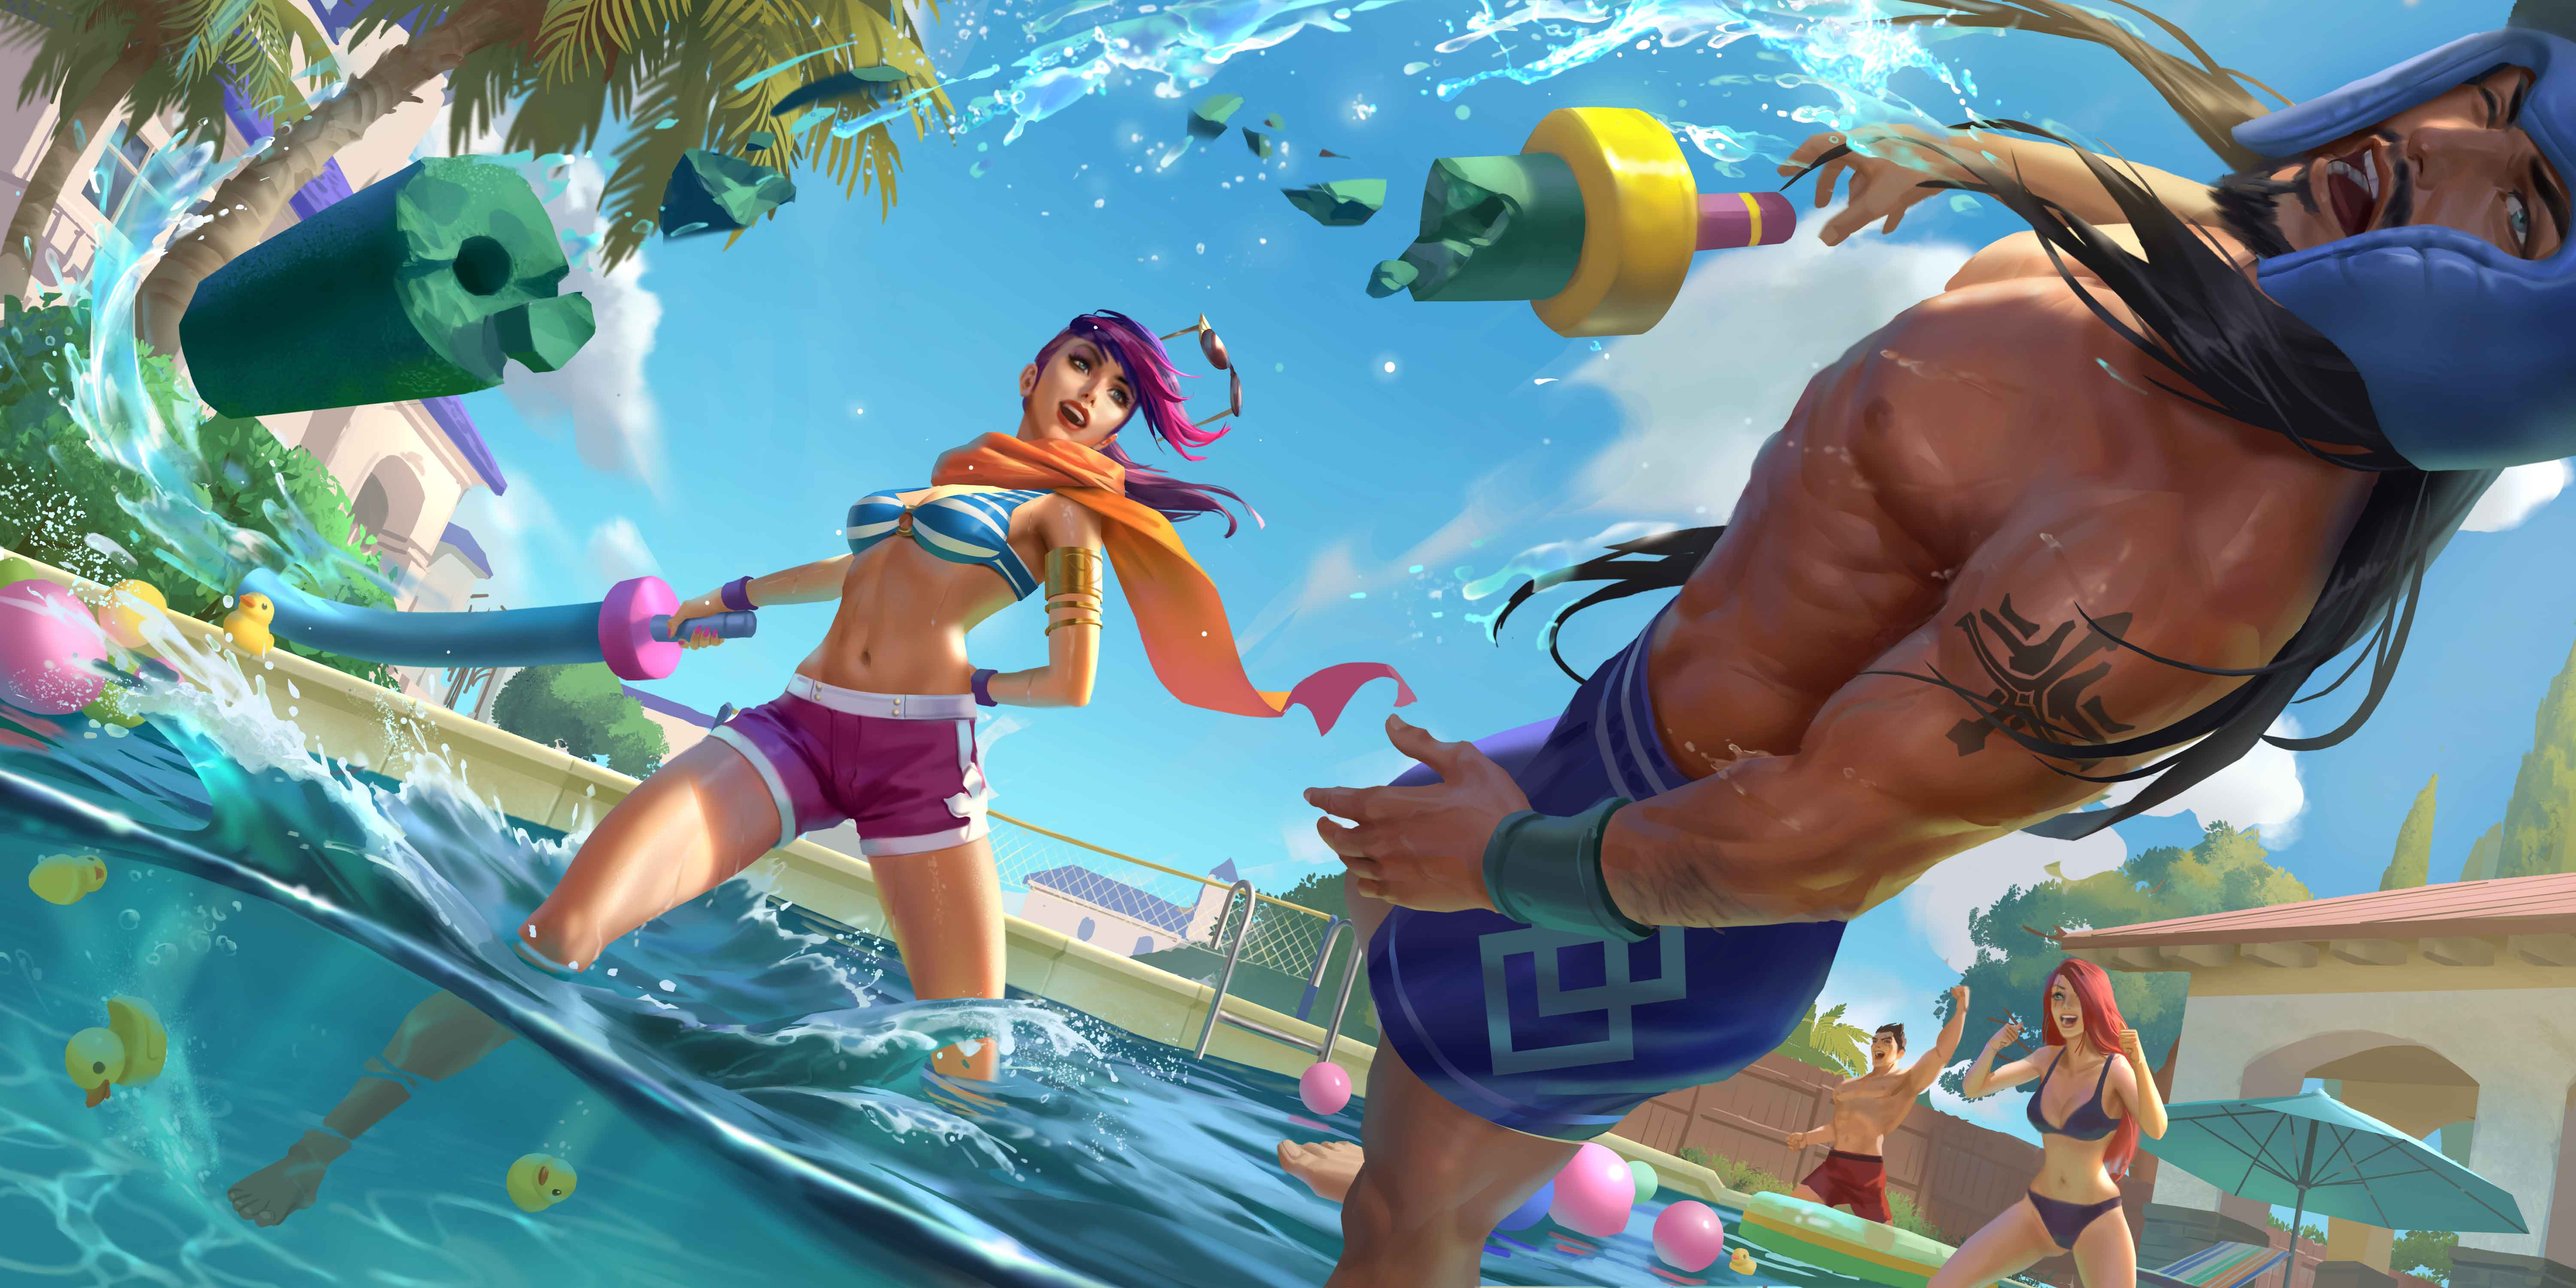 ChampSkin_Fiora_PoolParty_Level_02_CENS.jpg